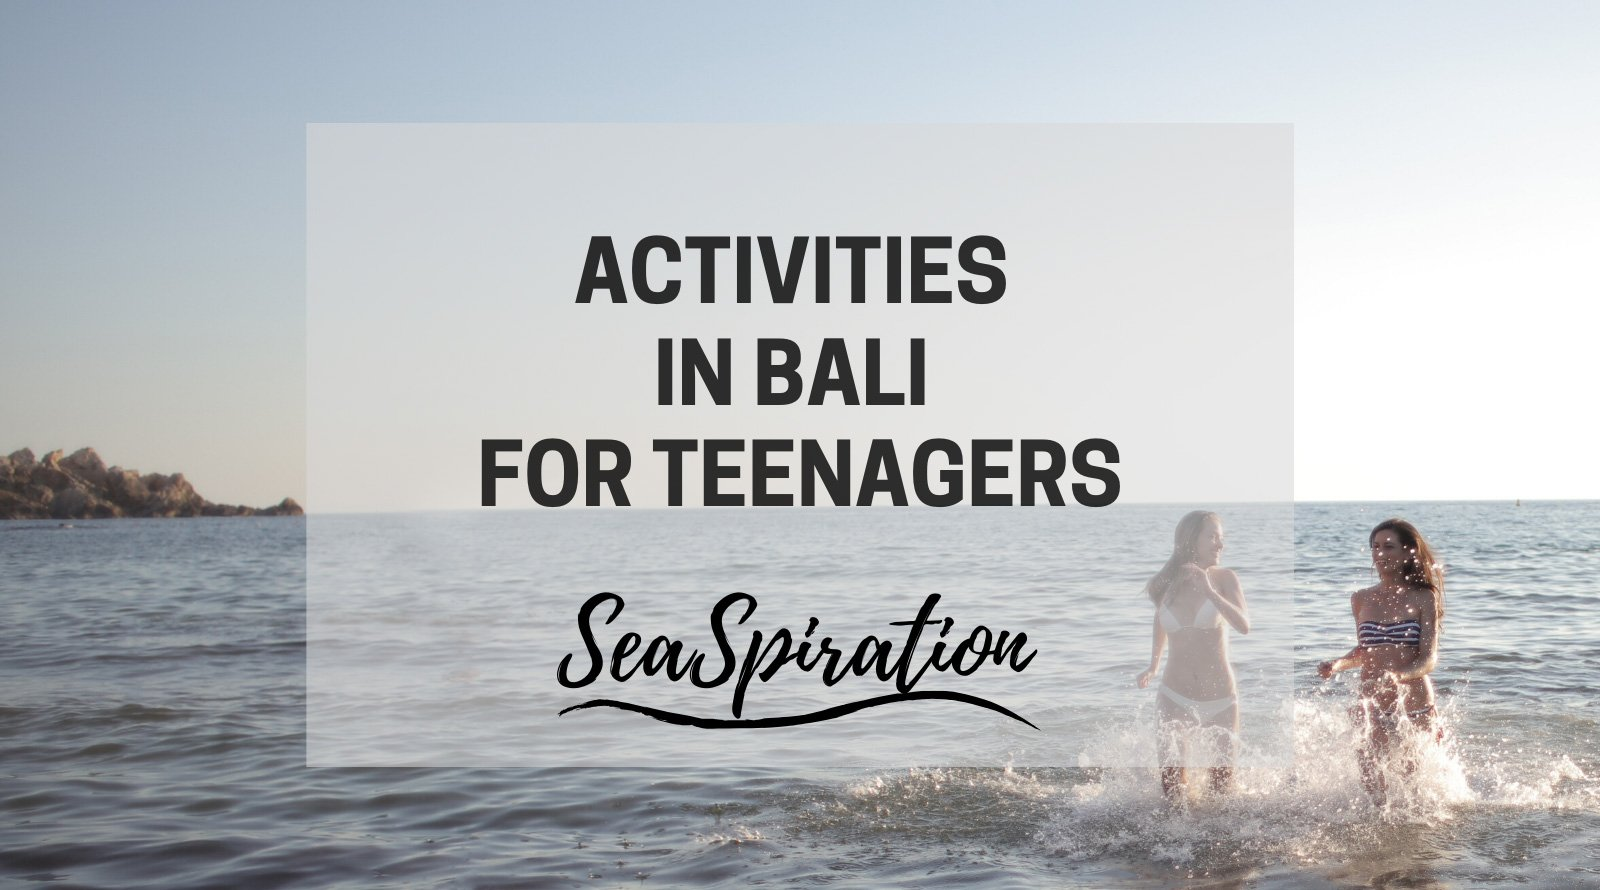 Things to do for teenagers in Bali